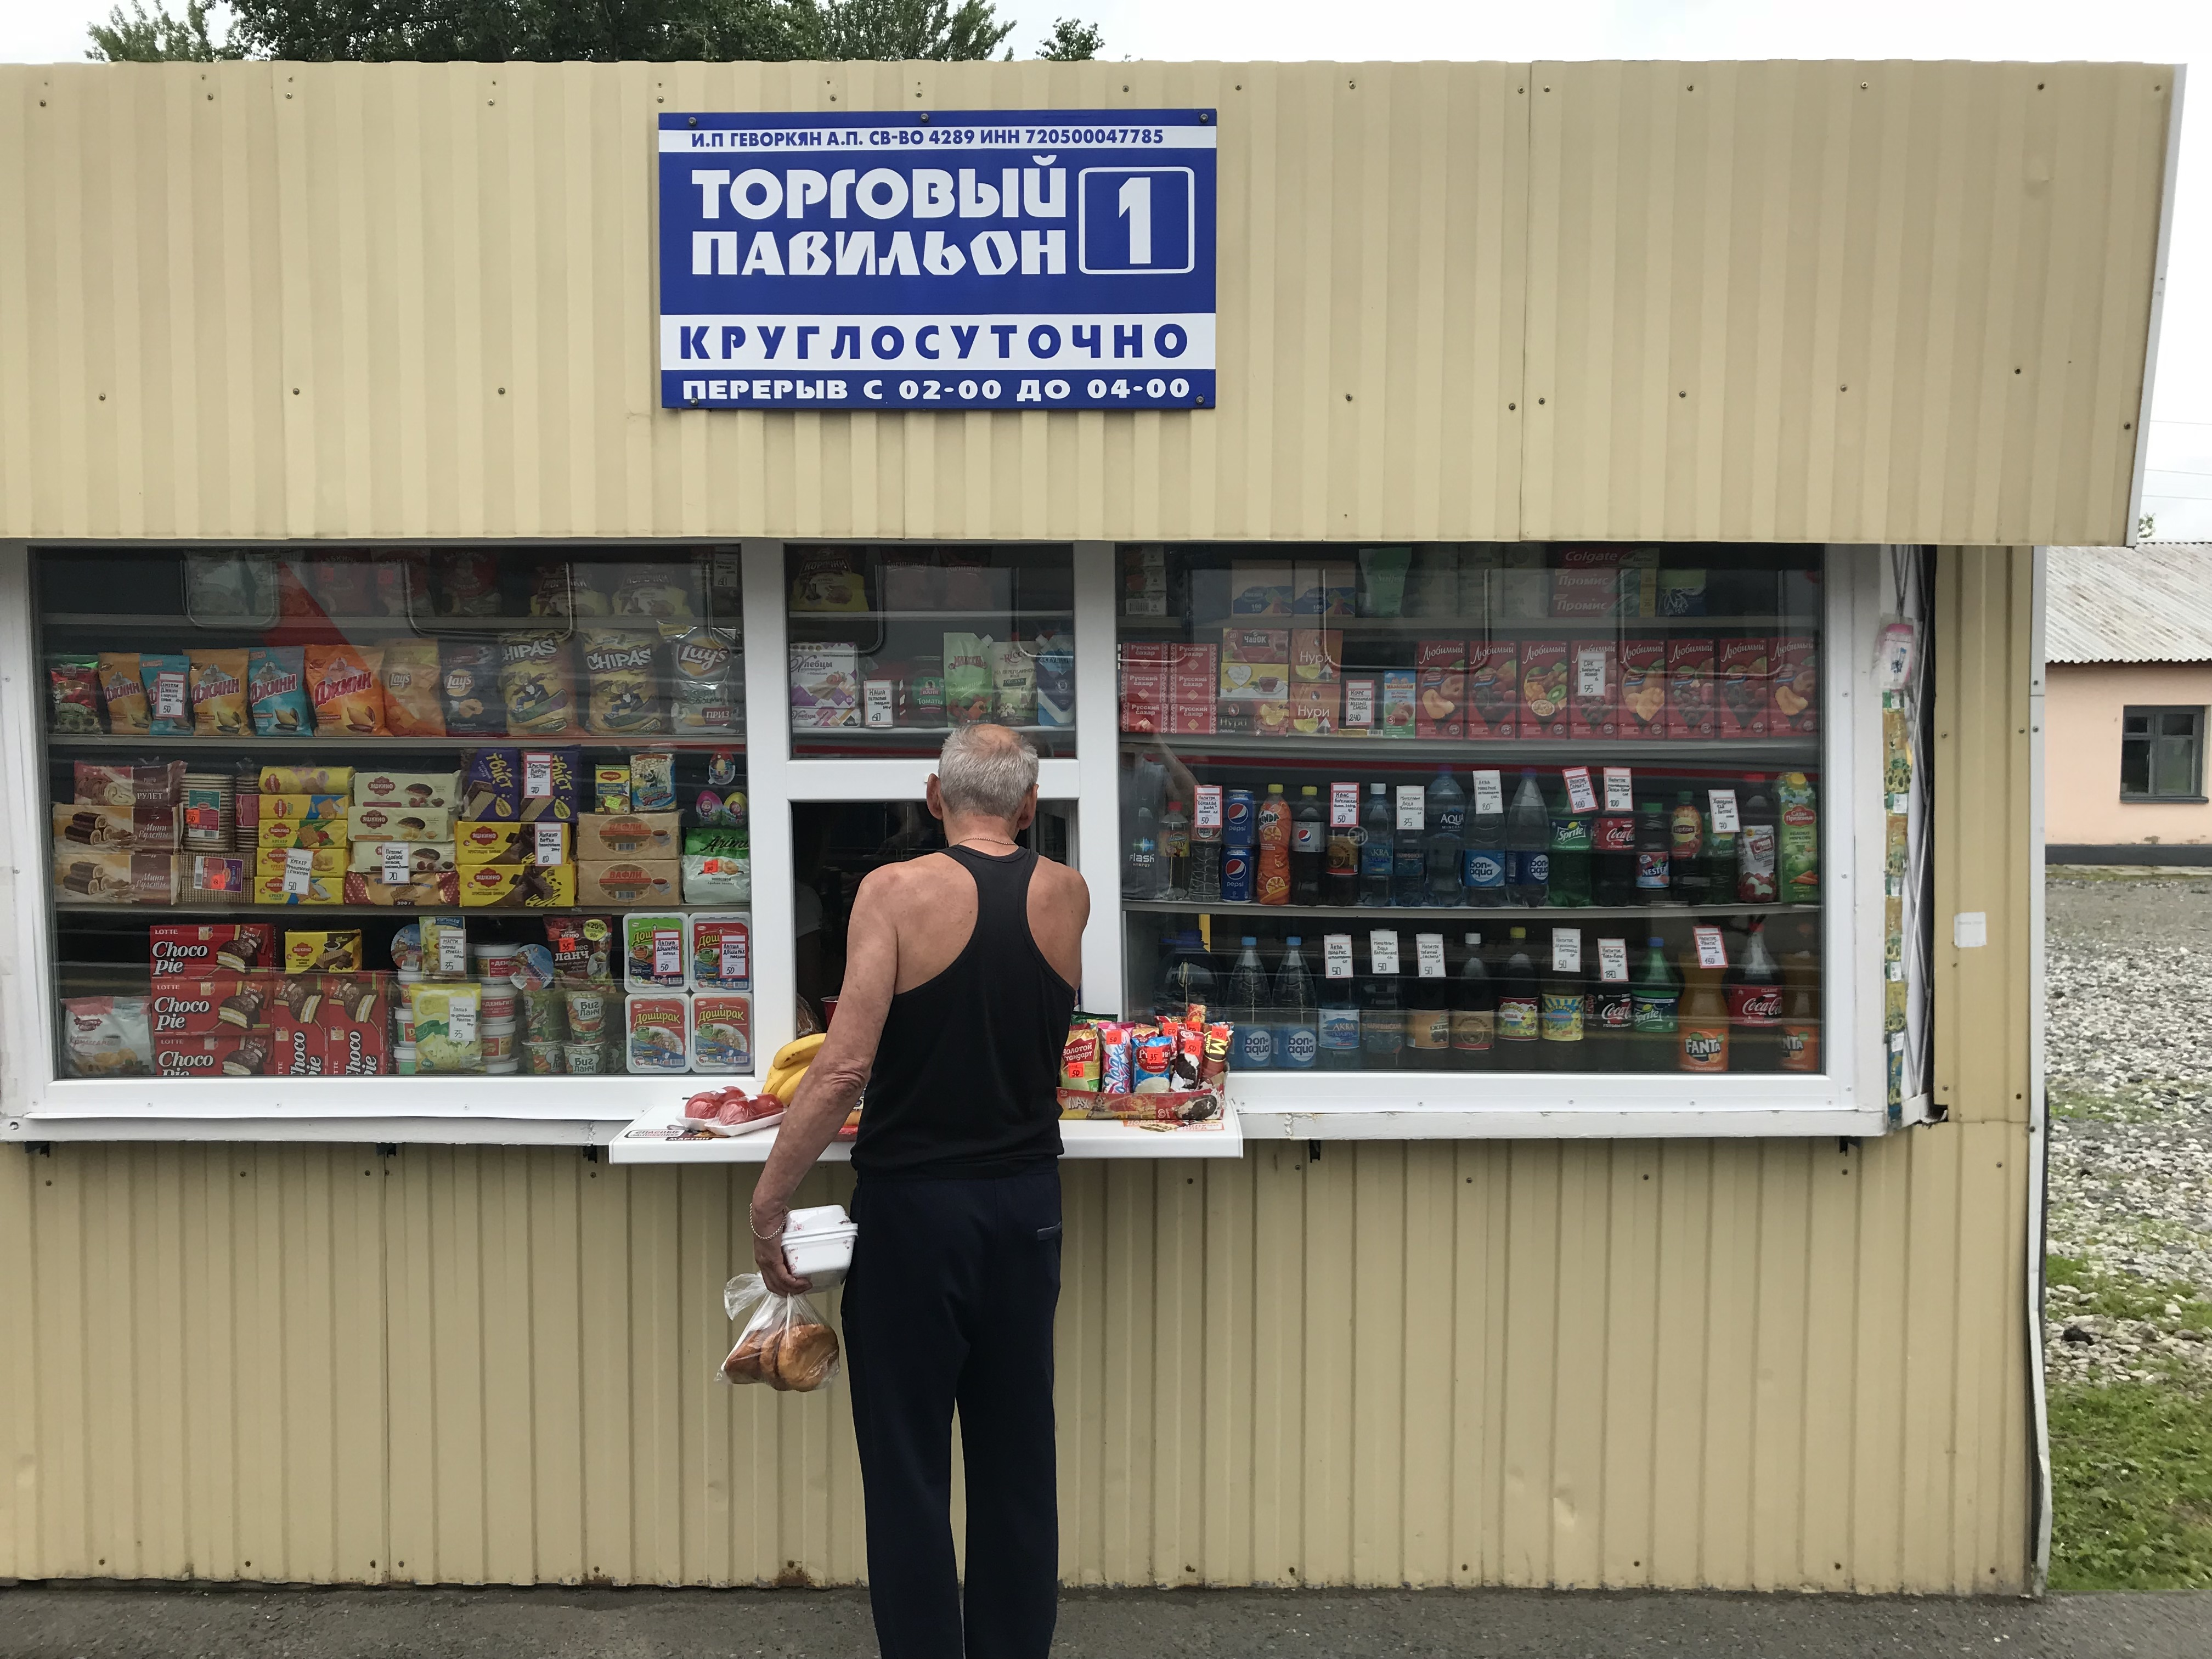 Typical newsstand at a train stop along the route.